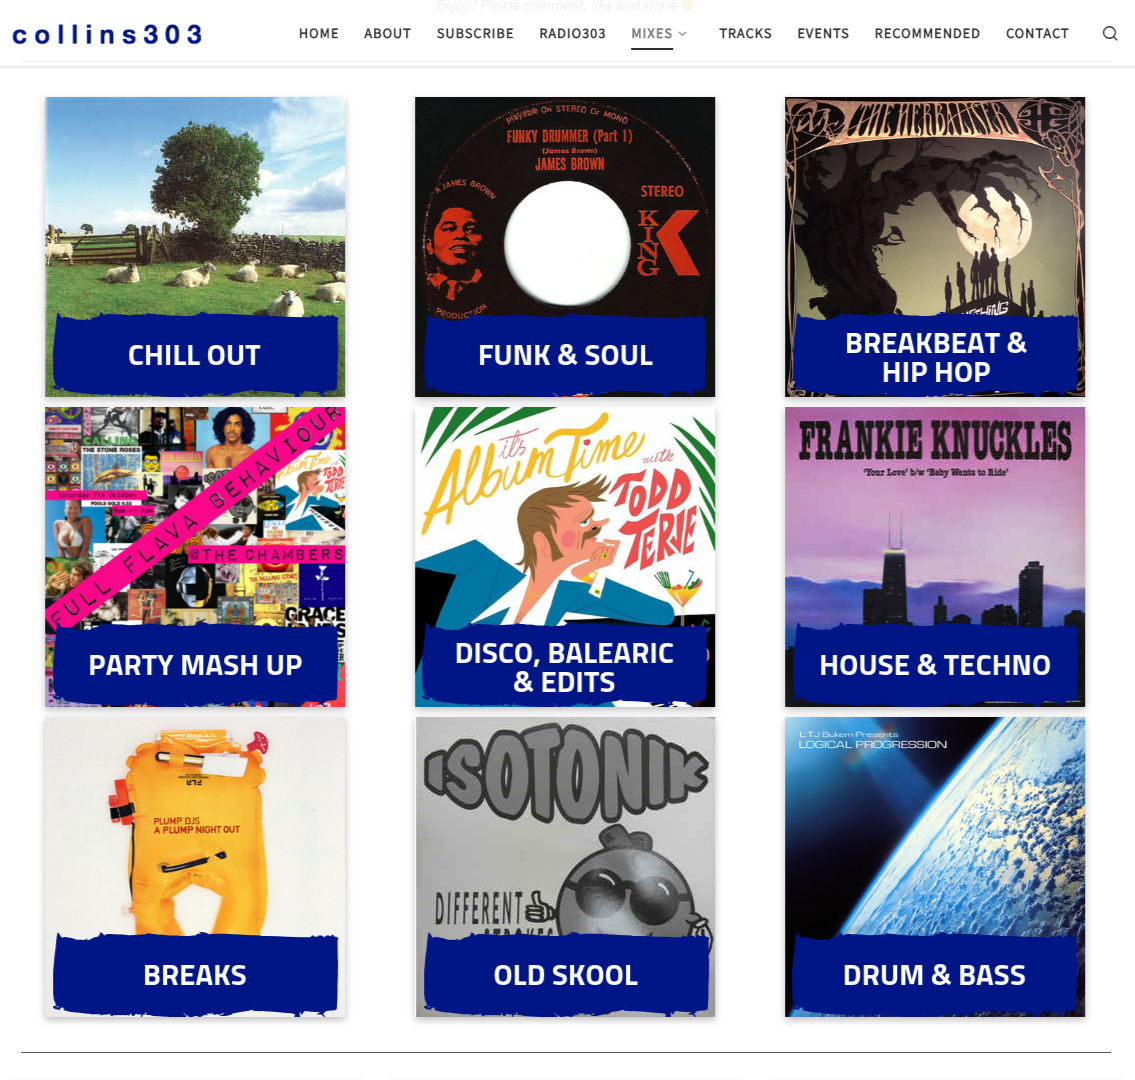 new genre buttons for collins303.com mixes page